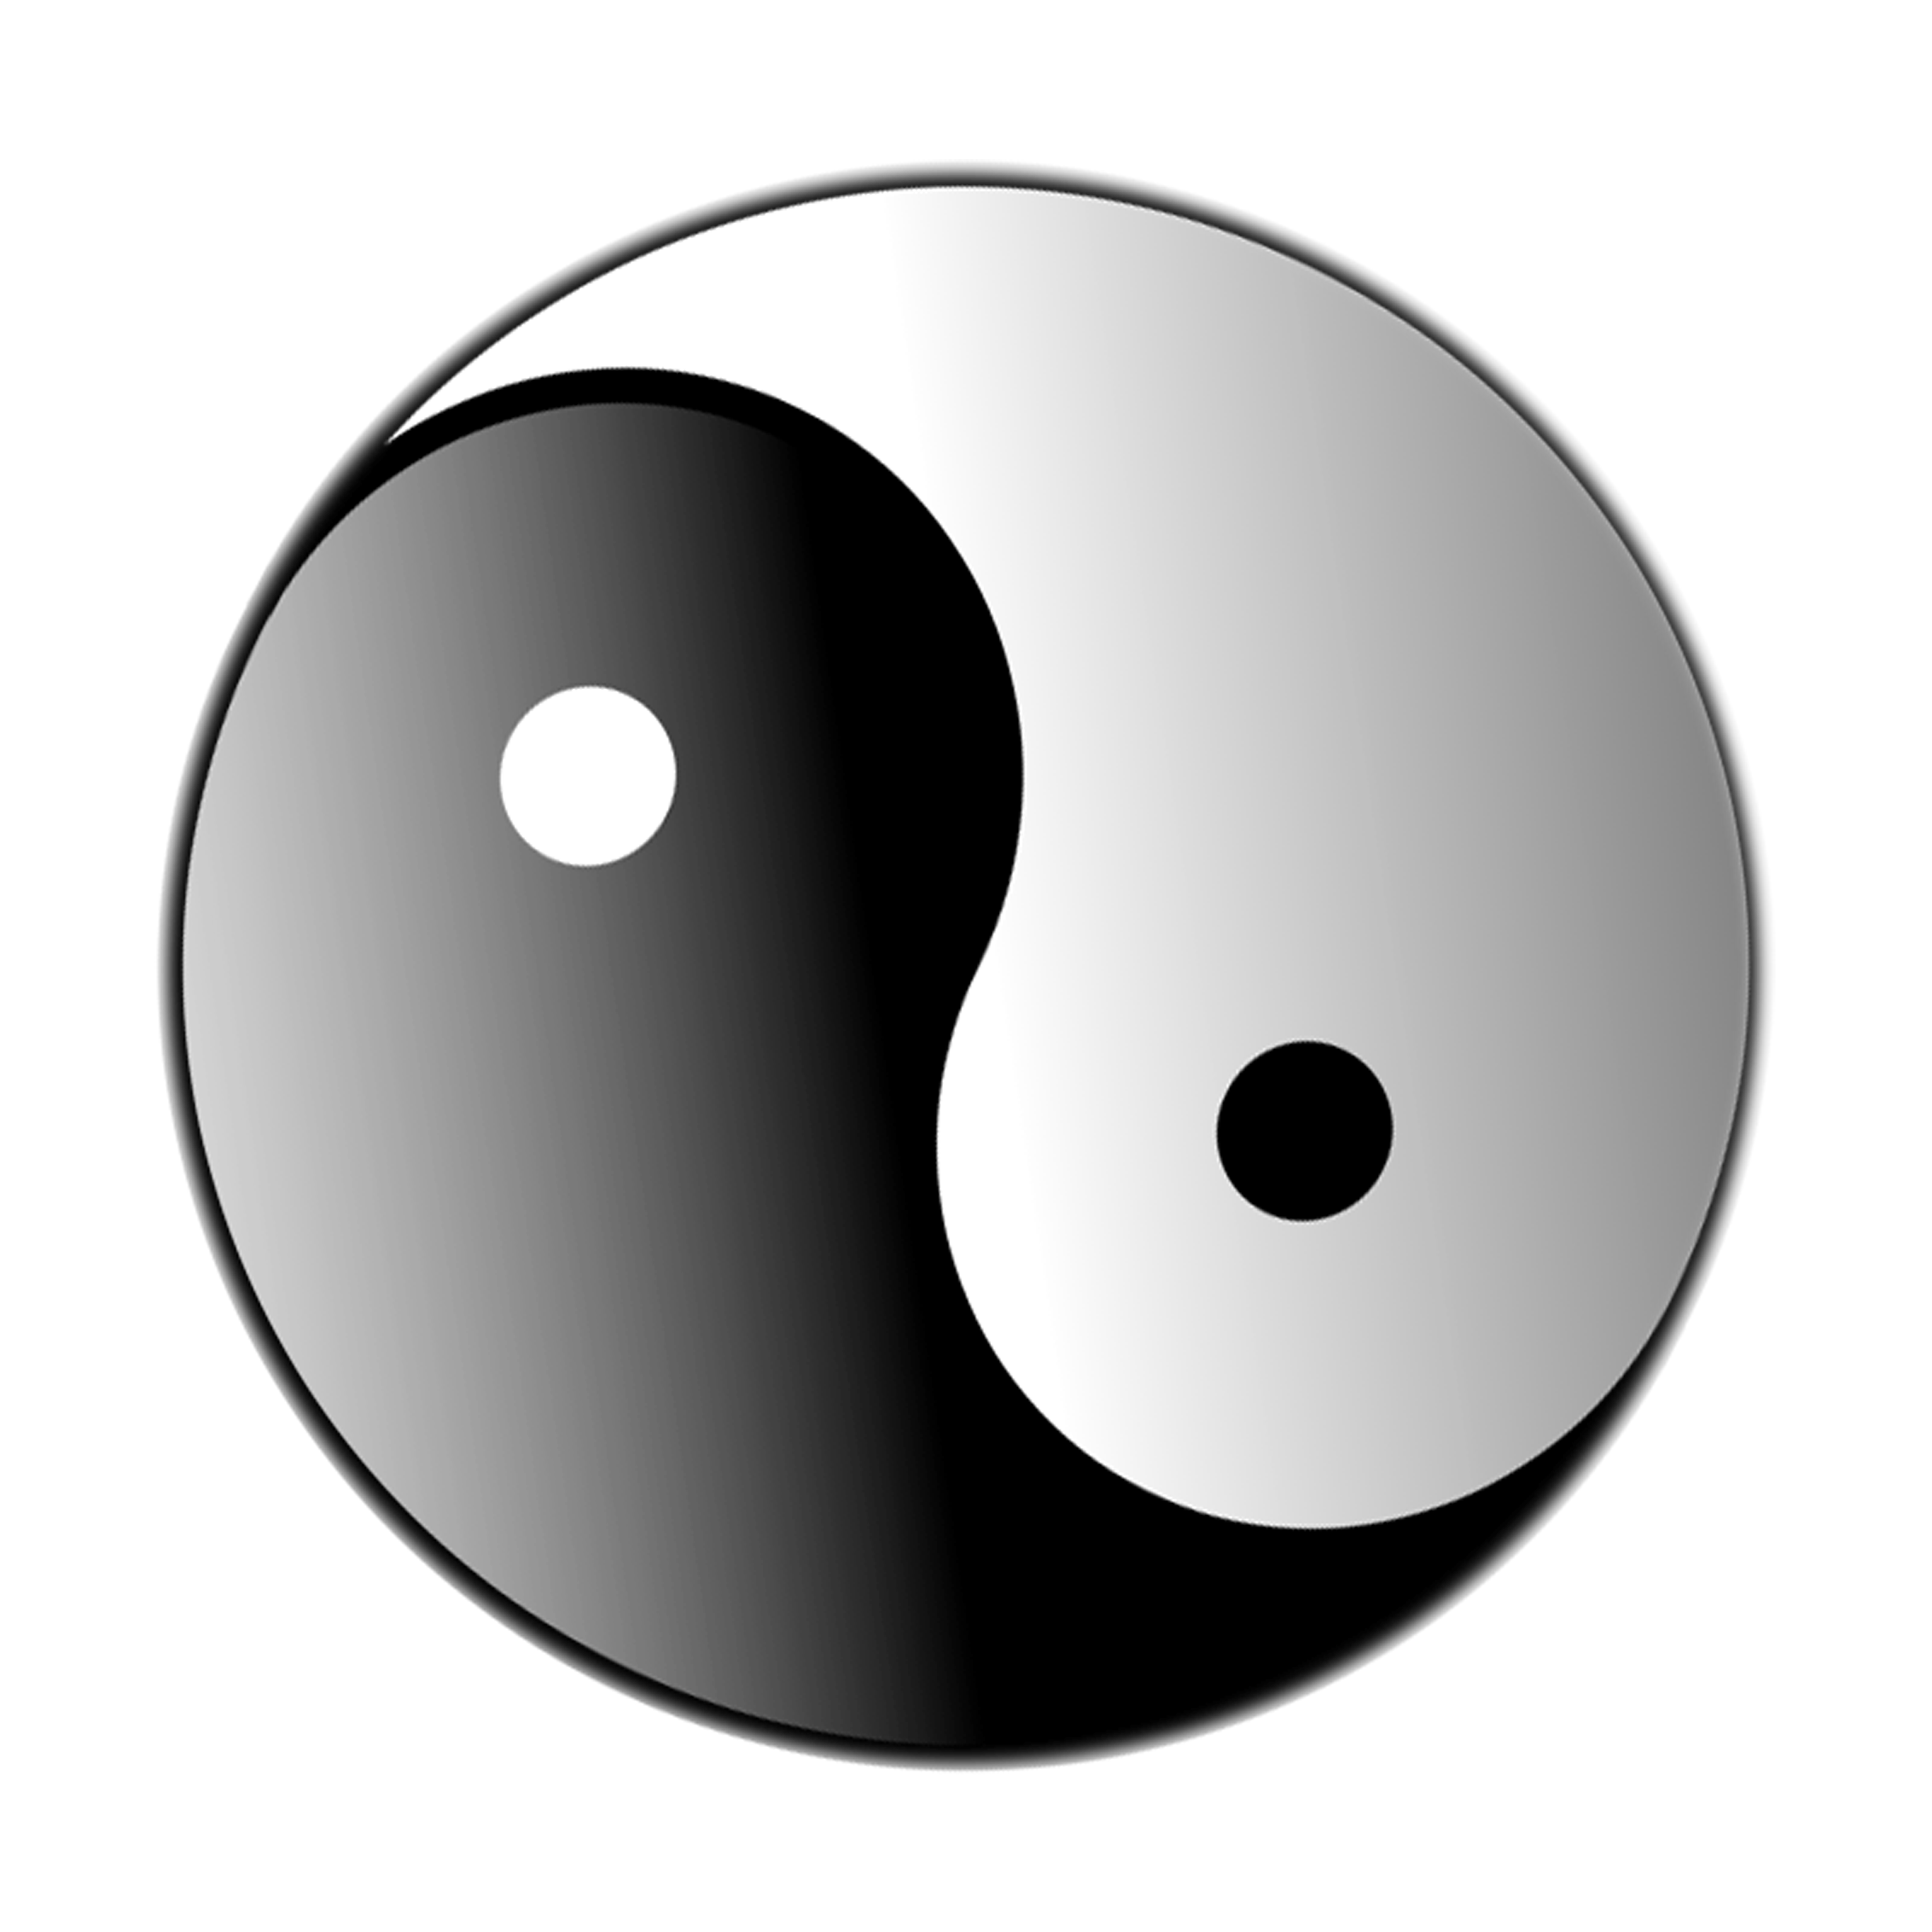 Pictures Of Ying Yang Symbol